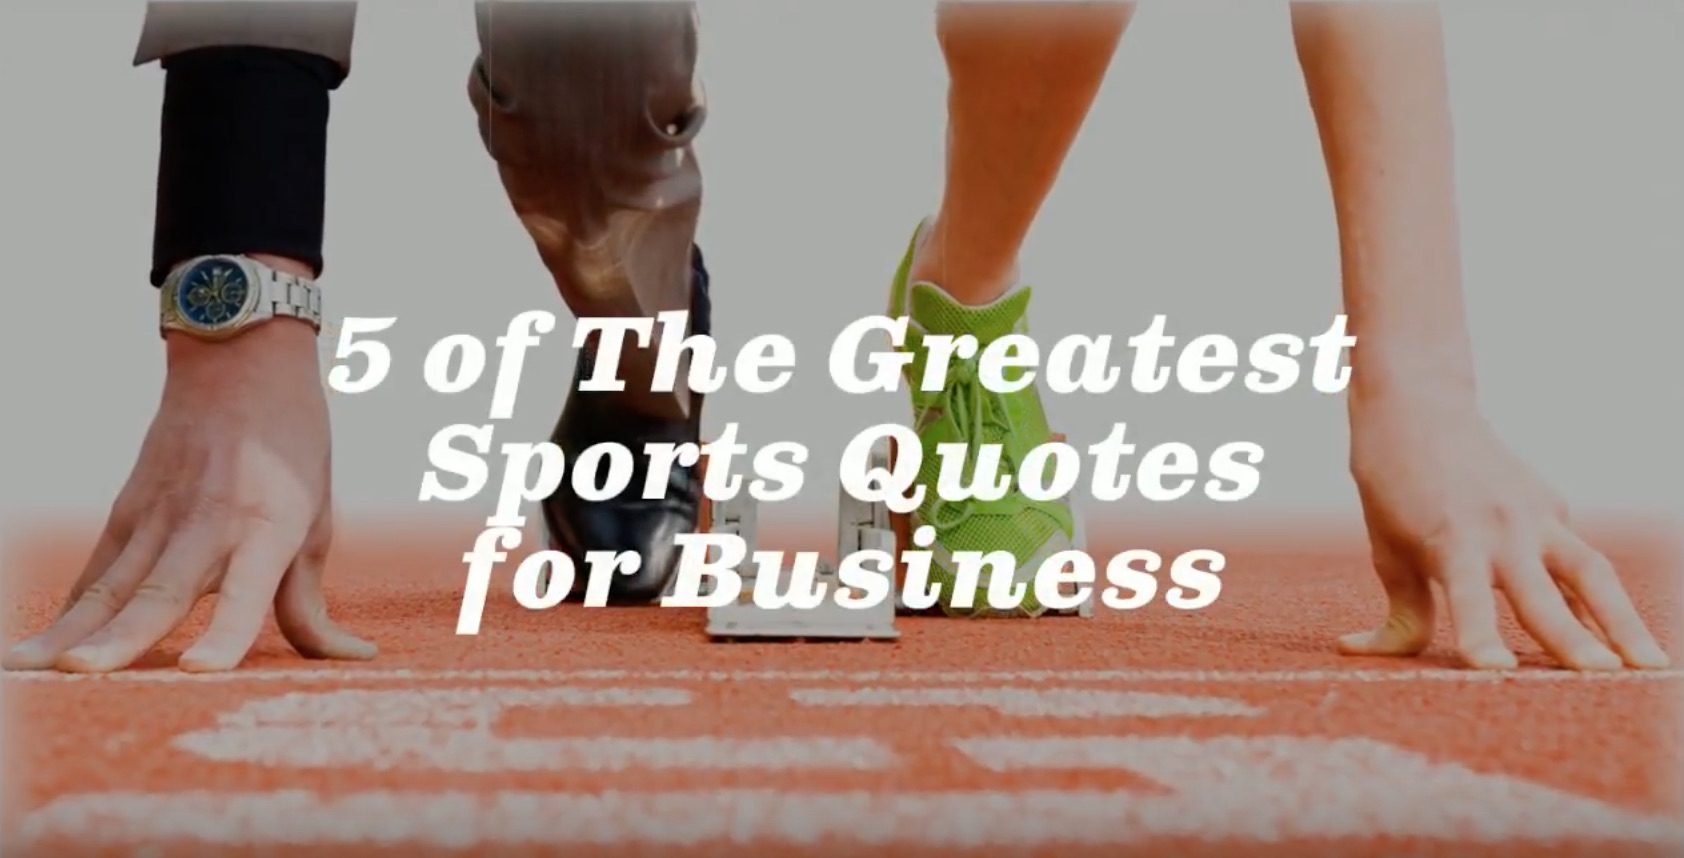 5 of the Greatest Sports Quotes for Business